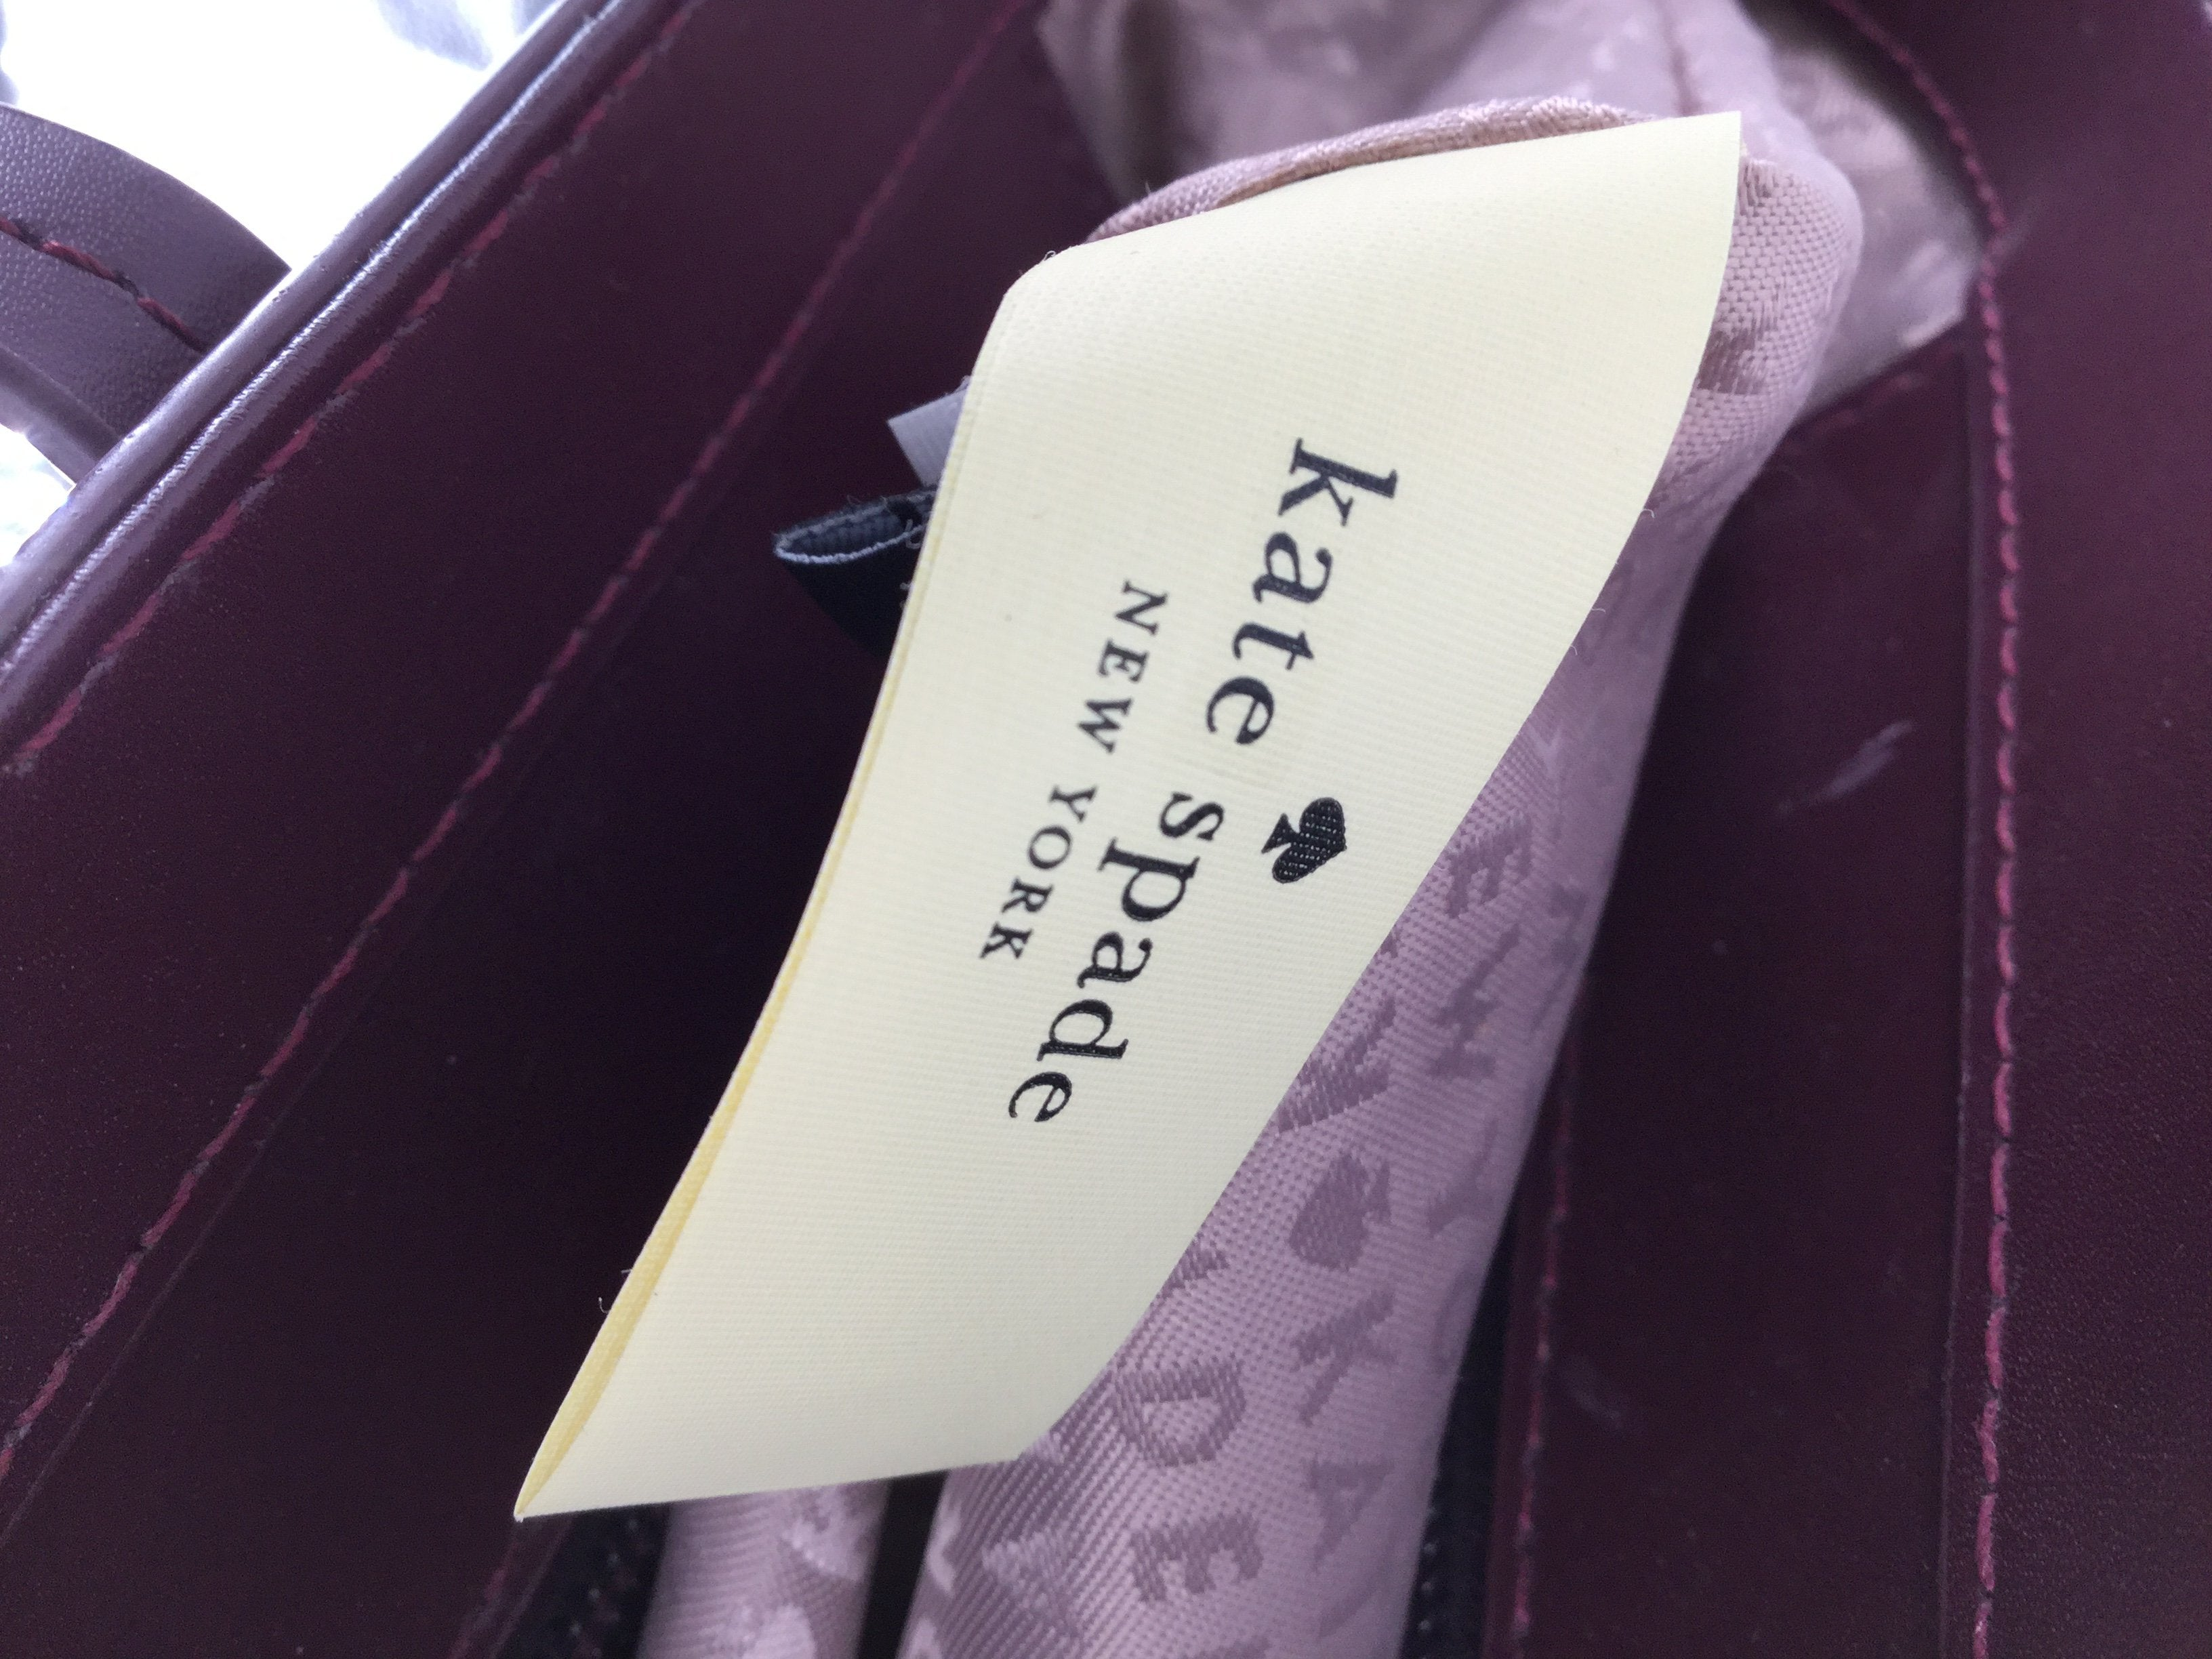 Kate Spade Designer Handbag, Maroon, Size Large - <P>EVERY GIRL NEEDS A KATE SPADE HANDBAG, CHECK OUT THIS BEAUTIFUL LARGE MAROON BAG. NO POCKETS ON THE INSIDE. MINOR WEAR ON THE BOTTOM OF BAG, (SEE PHOTOS).</P>